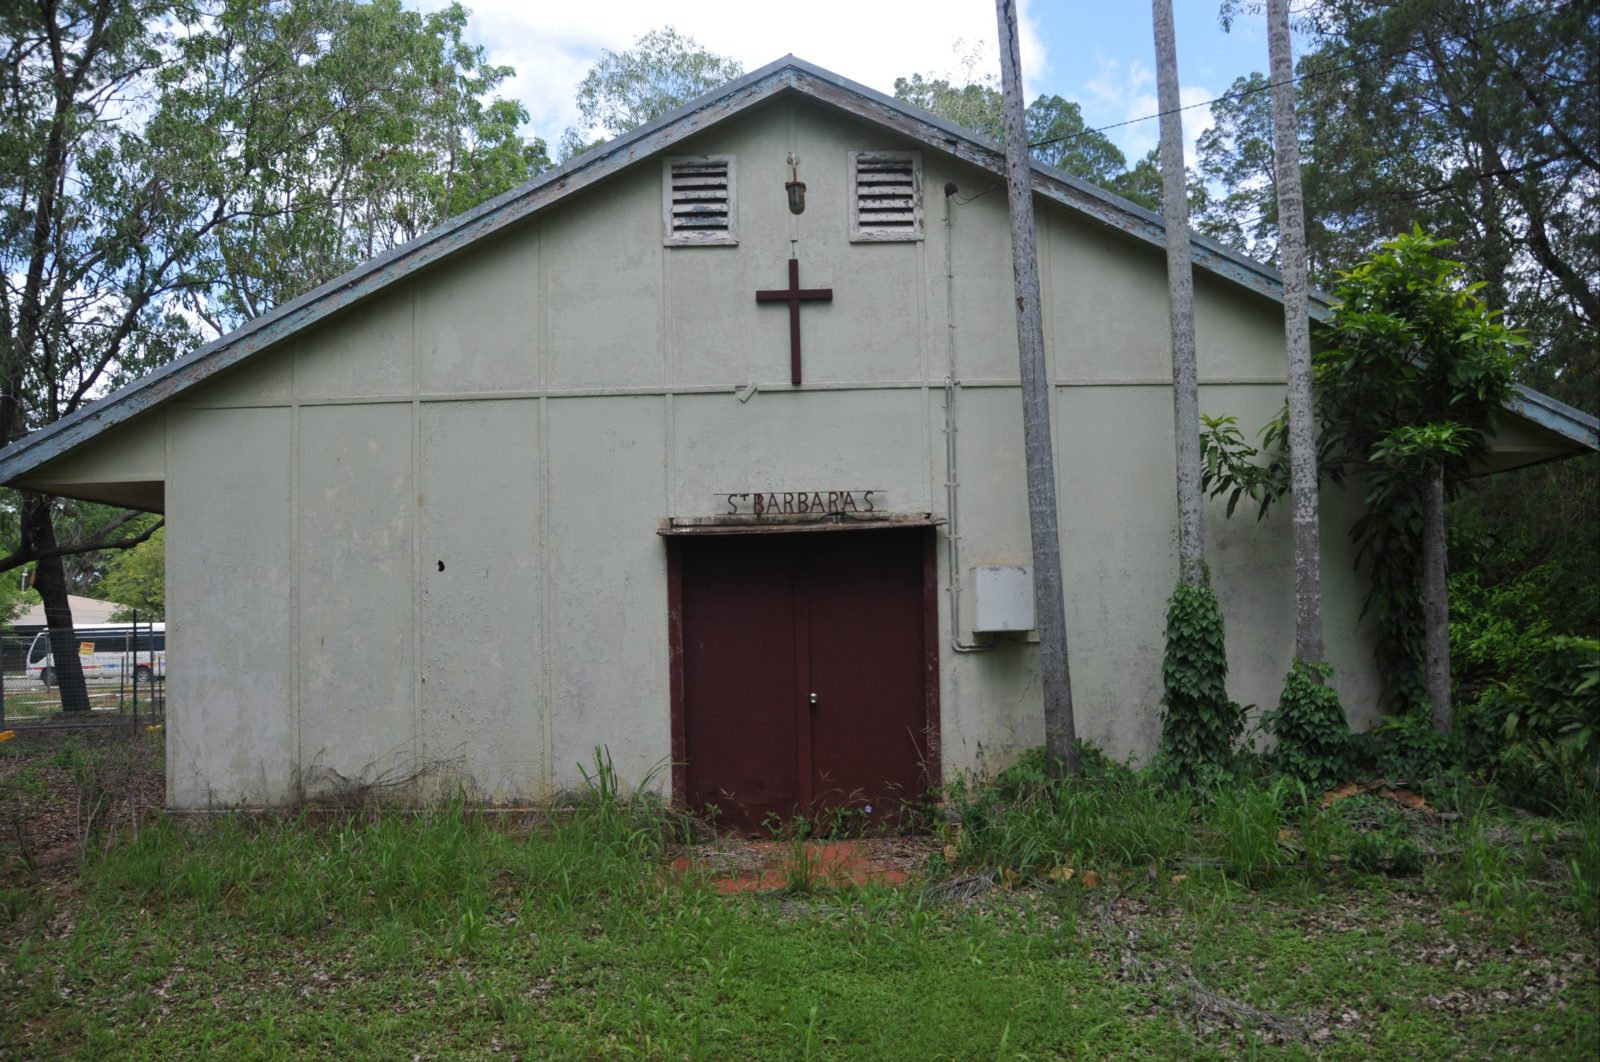 Church entrance.